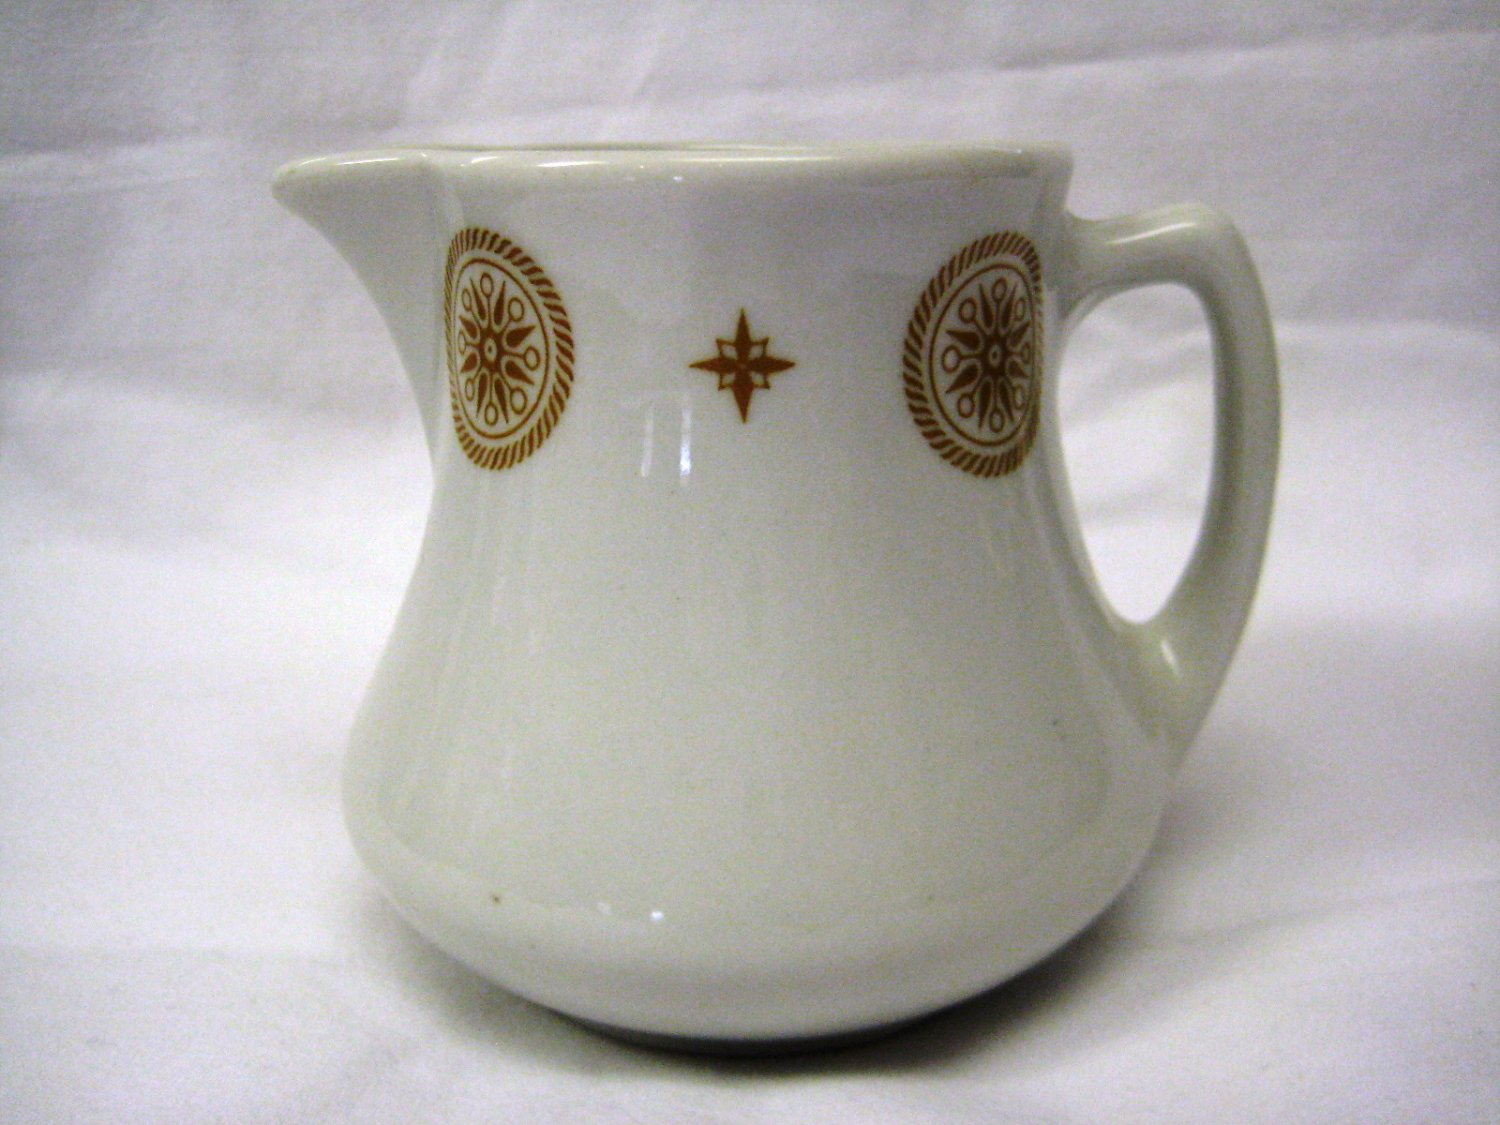 Vintage 1973 Shenango China by Interpace Restaurant Ware Small Creamer